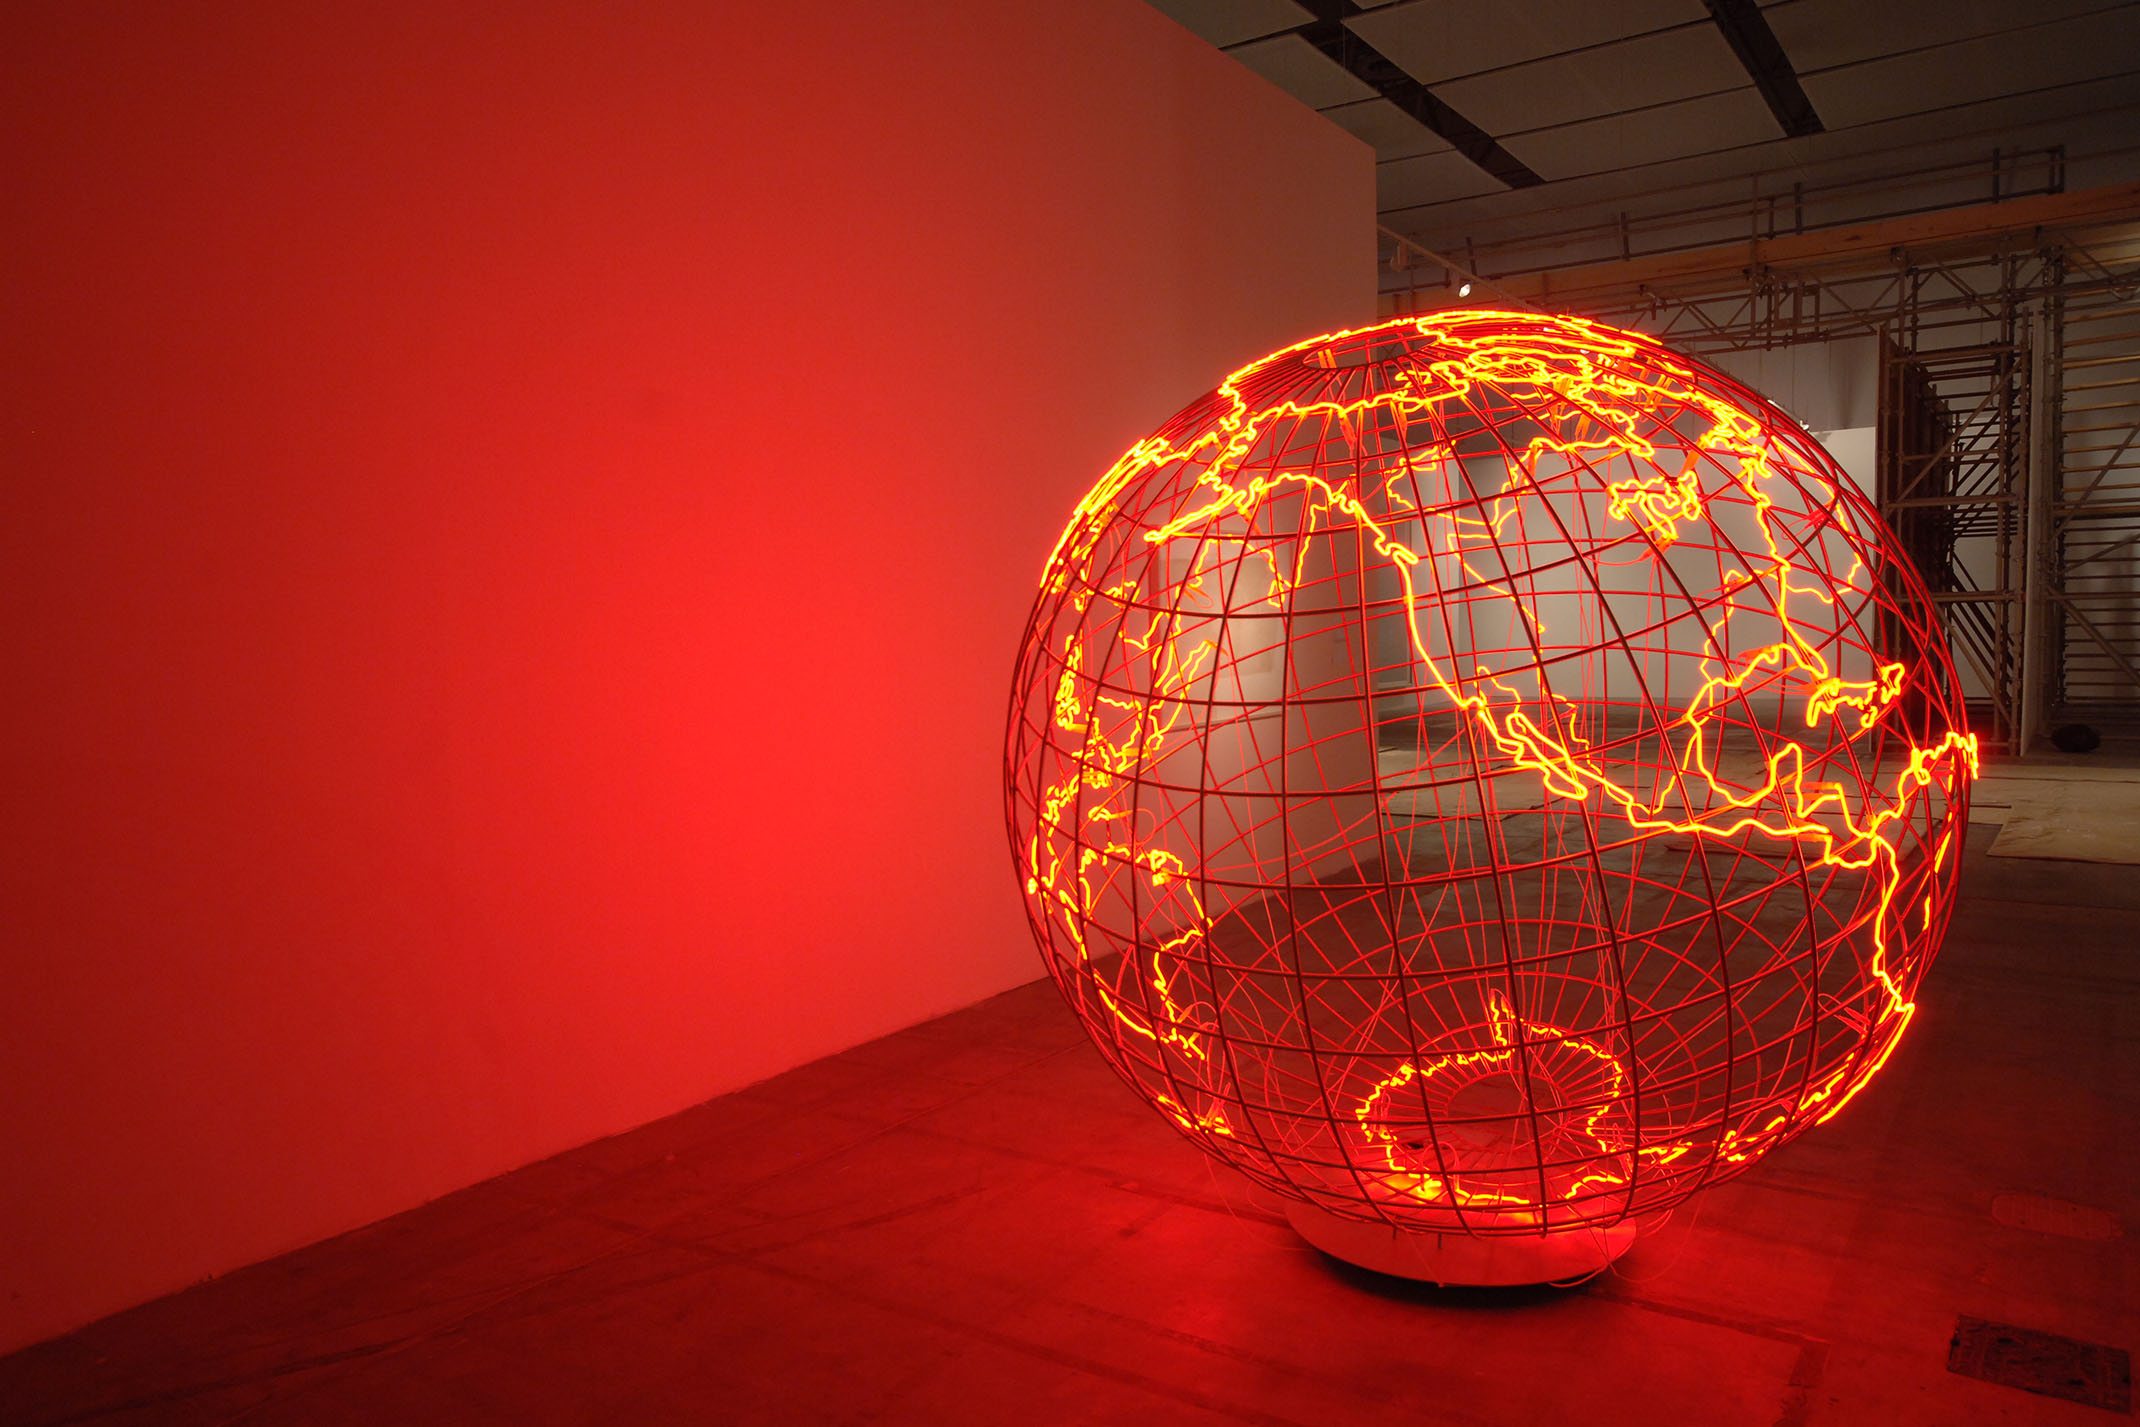 Image of Mona Hatoum from Wikidata